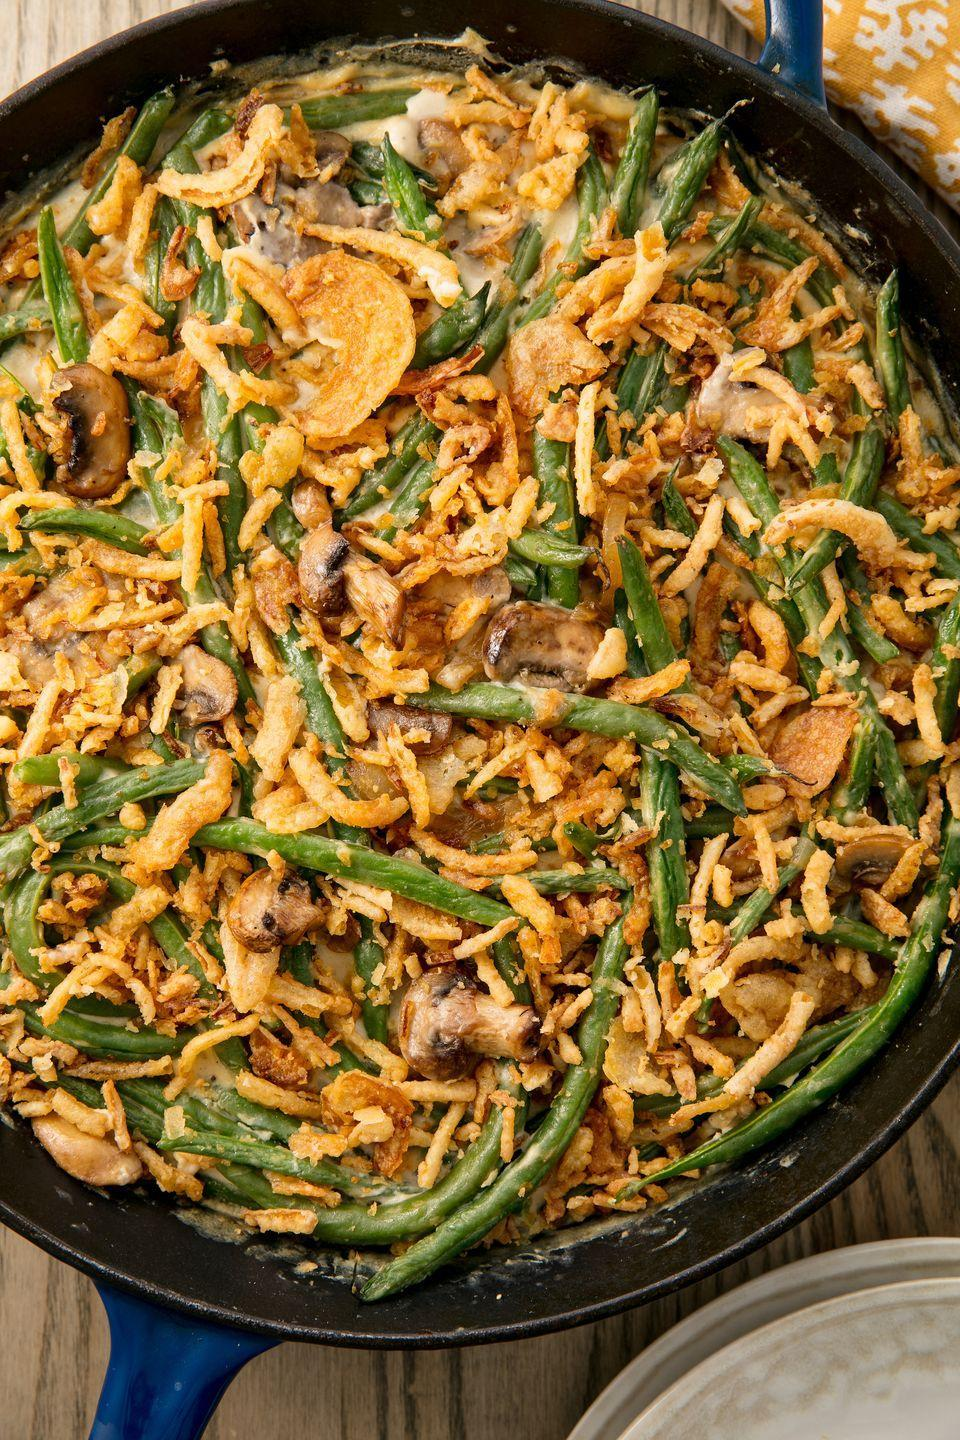 "<p>The epitome of Thanksgiving.</p><p>Get the recipe from <a href=""https://www.delish.com/cooking/recipe-ideas/recipes/a55340/easy-homemade-classic-green-bean-casserole-recipe/"" rel=""nofollow noopener"" target=""_blank"" data-ylk=""slk:Delish"" class=""link rapid-noclick-resp"">Delish</a>.</p>"